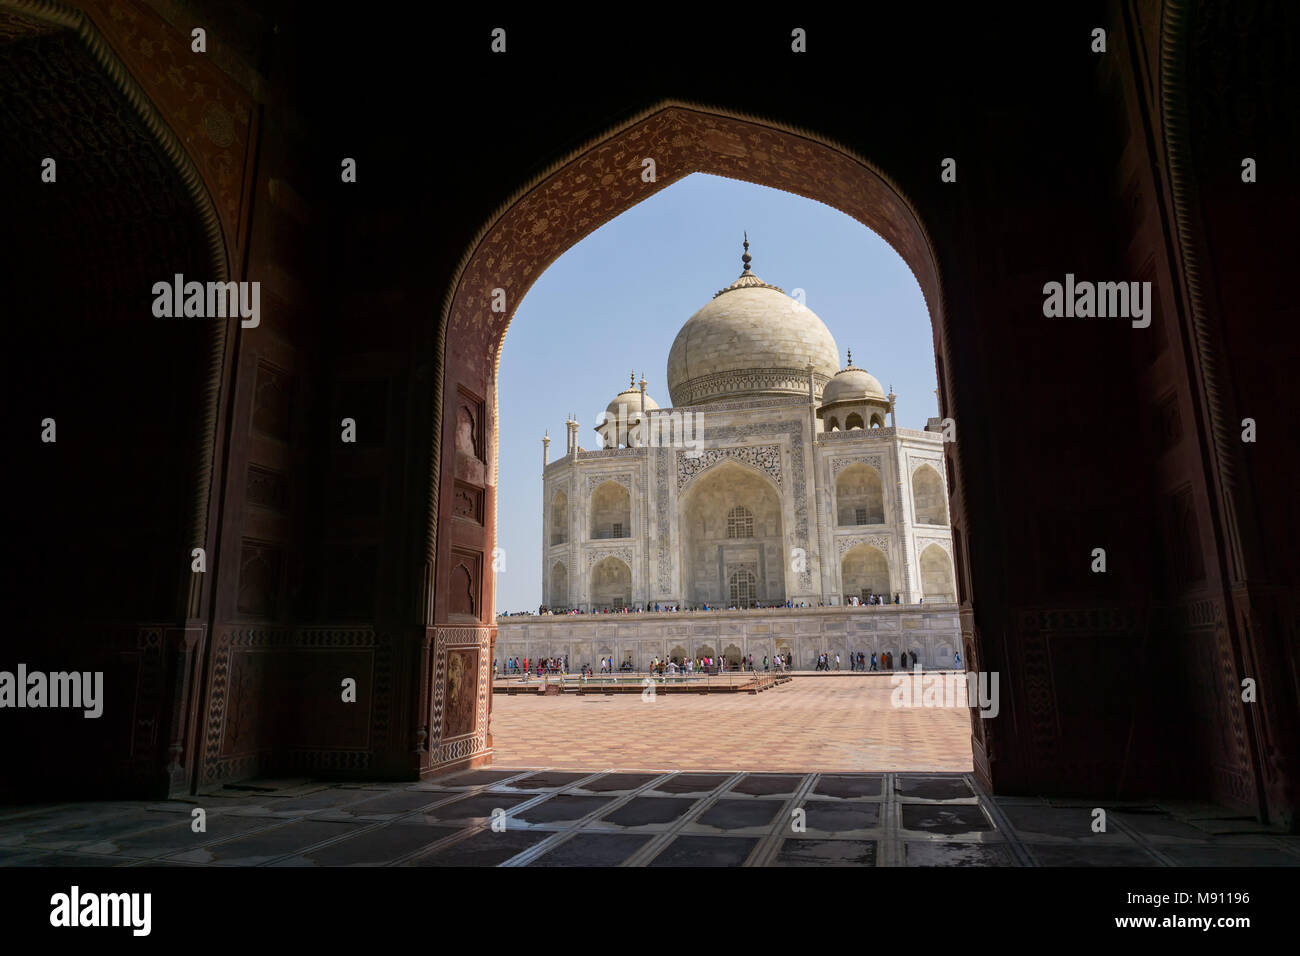 View of Taj mahal in Agra, Uttar Pradesh, India. It is one of the most visited landmark in India. - Stock Image